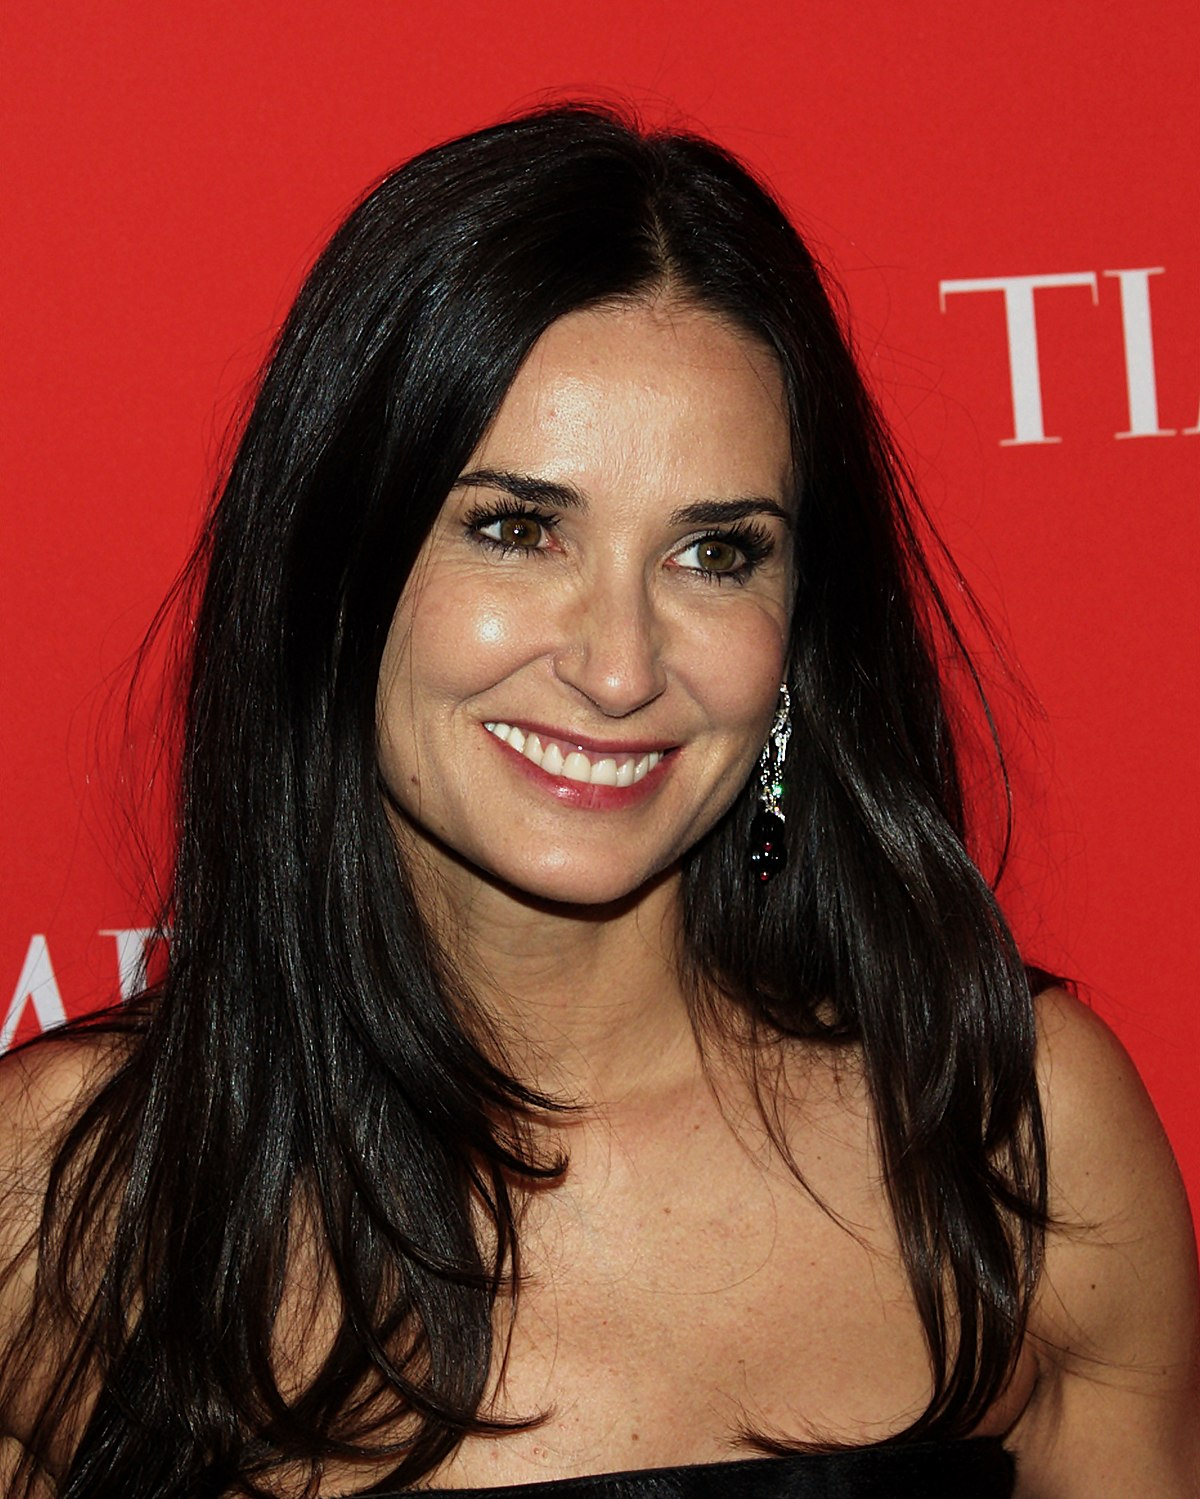 90 Year Old Woman Porn Stunning demi moore - wikipedia